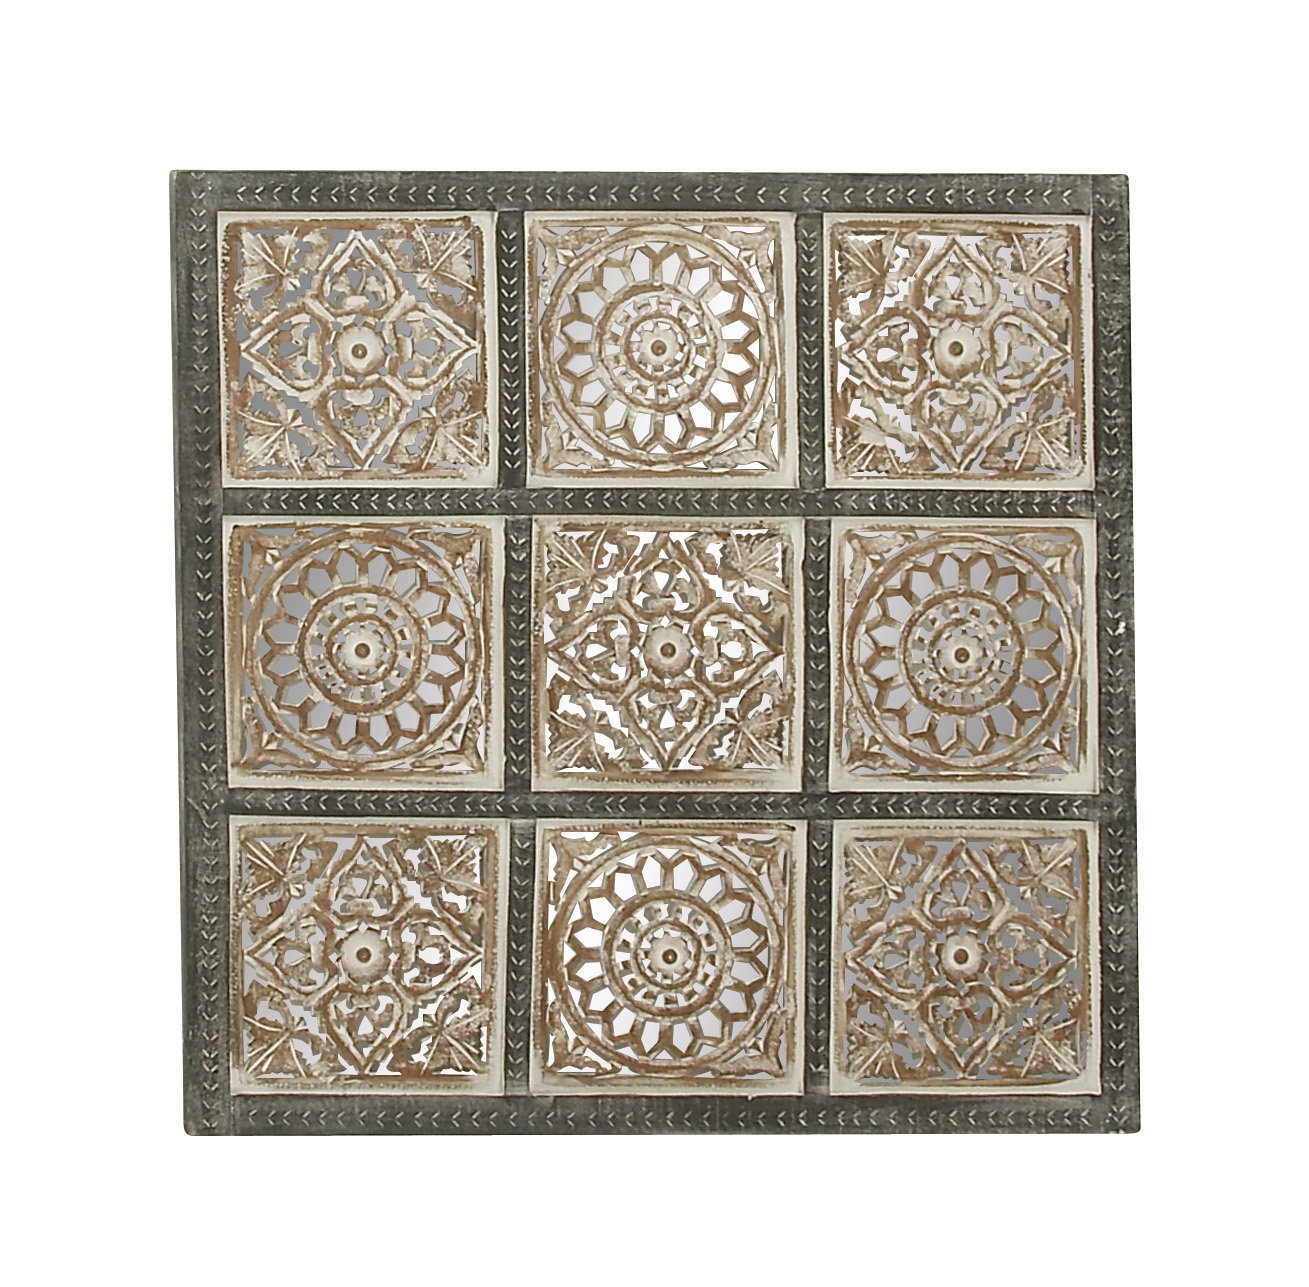 Creatively Designed Panel Wall Décor throughout 1 Piece Ortie Panel Wall Decor (Image 9 of 30)